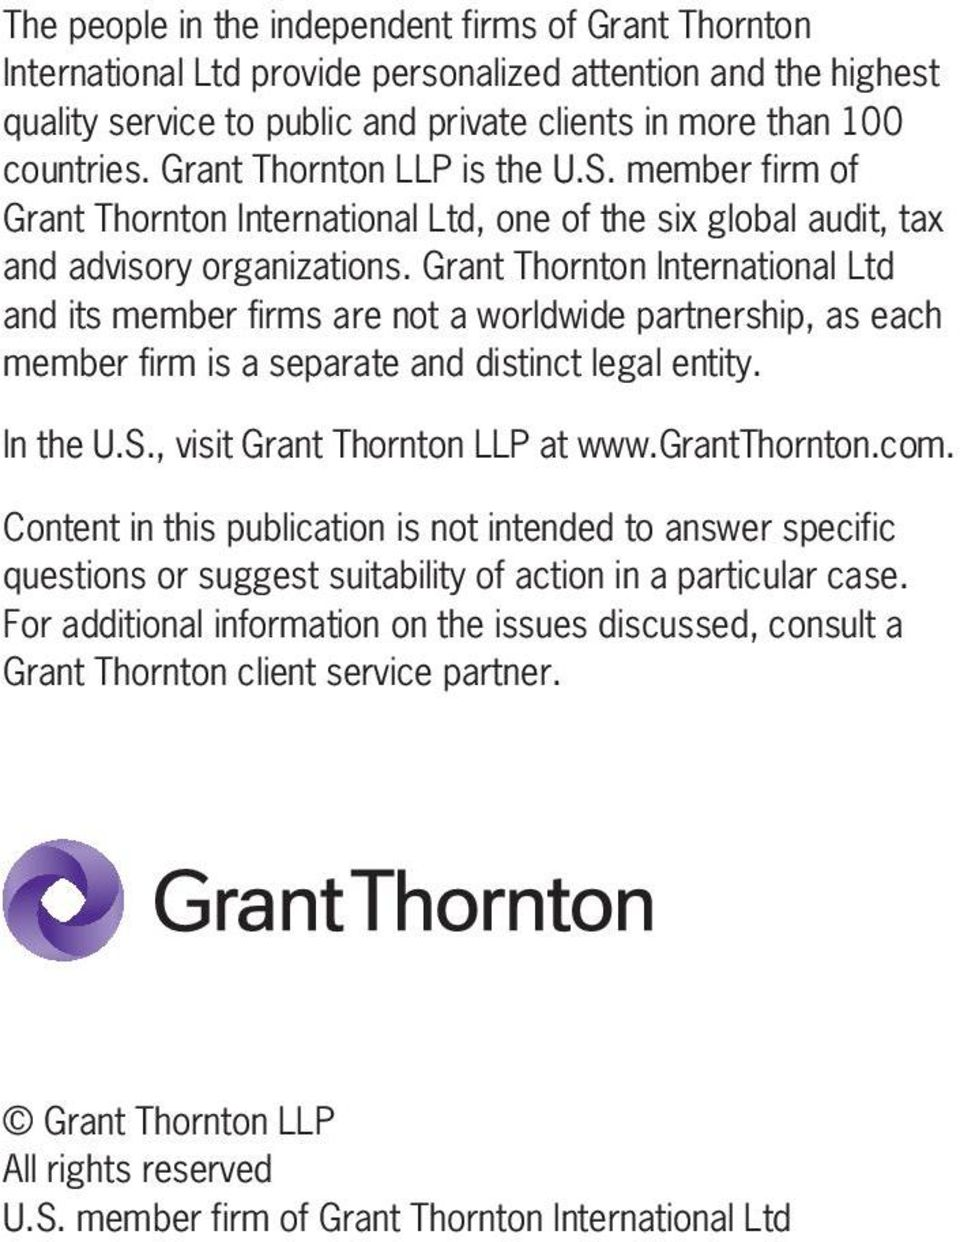 Grant Thornton International Ltd and its member firms are not a worldwide partnership, as each member firm is a separate and distinct legal entity. In the U.S., visit Grant Thornton LLP at www.